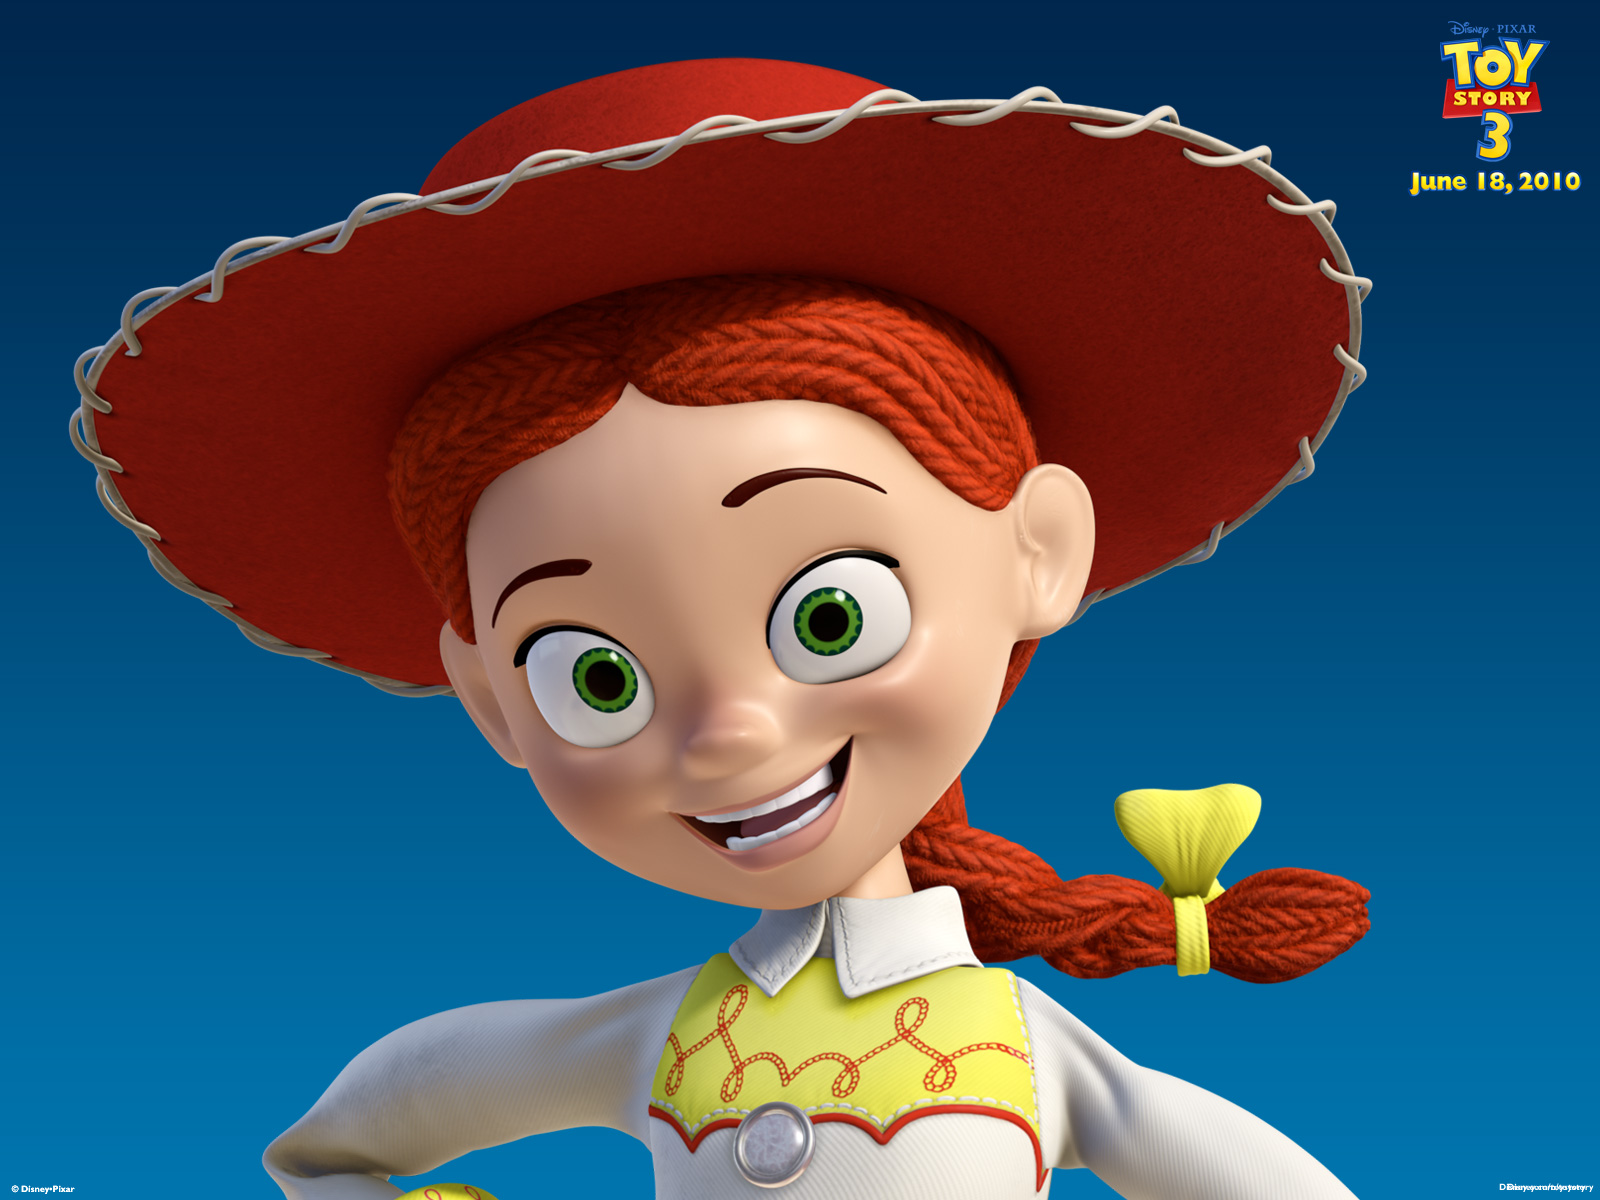 http://s5.picofile.com/file/8134075192/we2sisters_mihanblog_com_ToyStory3Wallpaper31600x1200.jpg